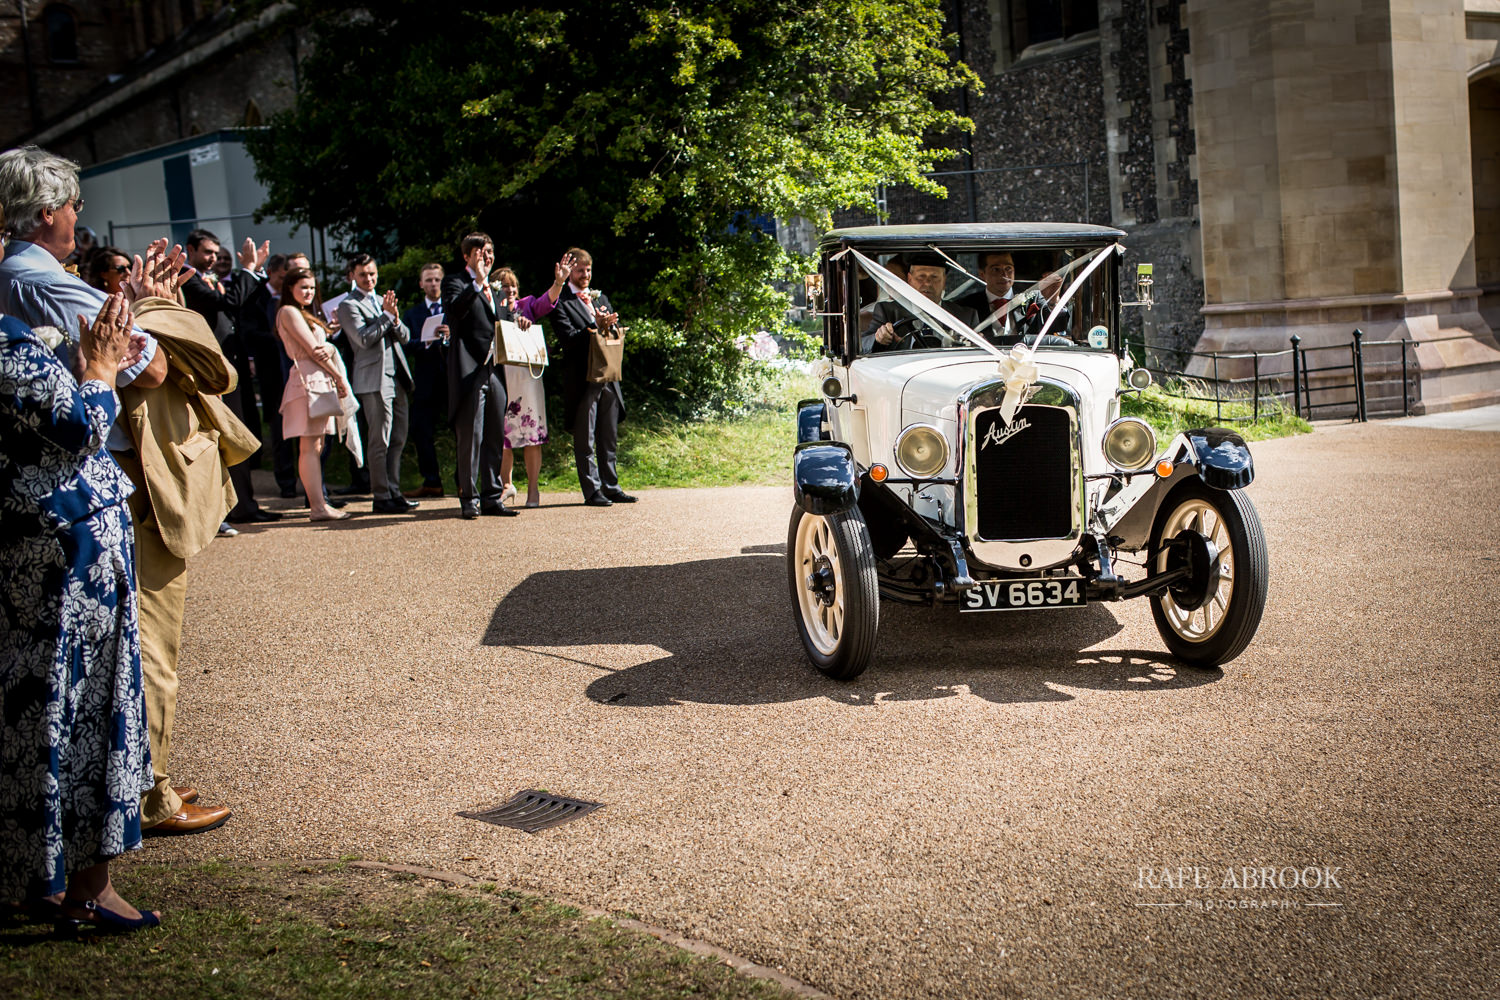 st albans cathedral wedding harpenden rafe abrook photography hertfordshire wedding photographer-1034.jpg